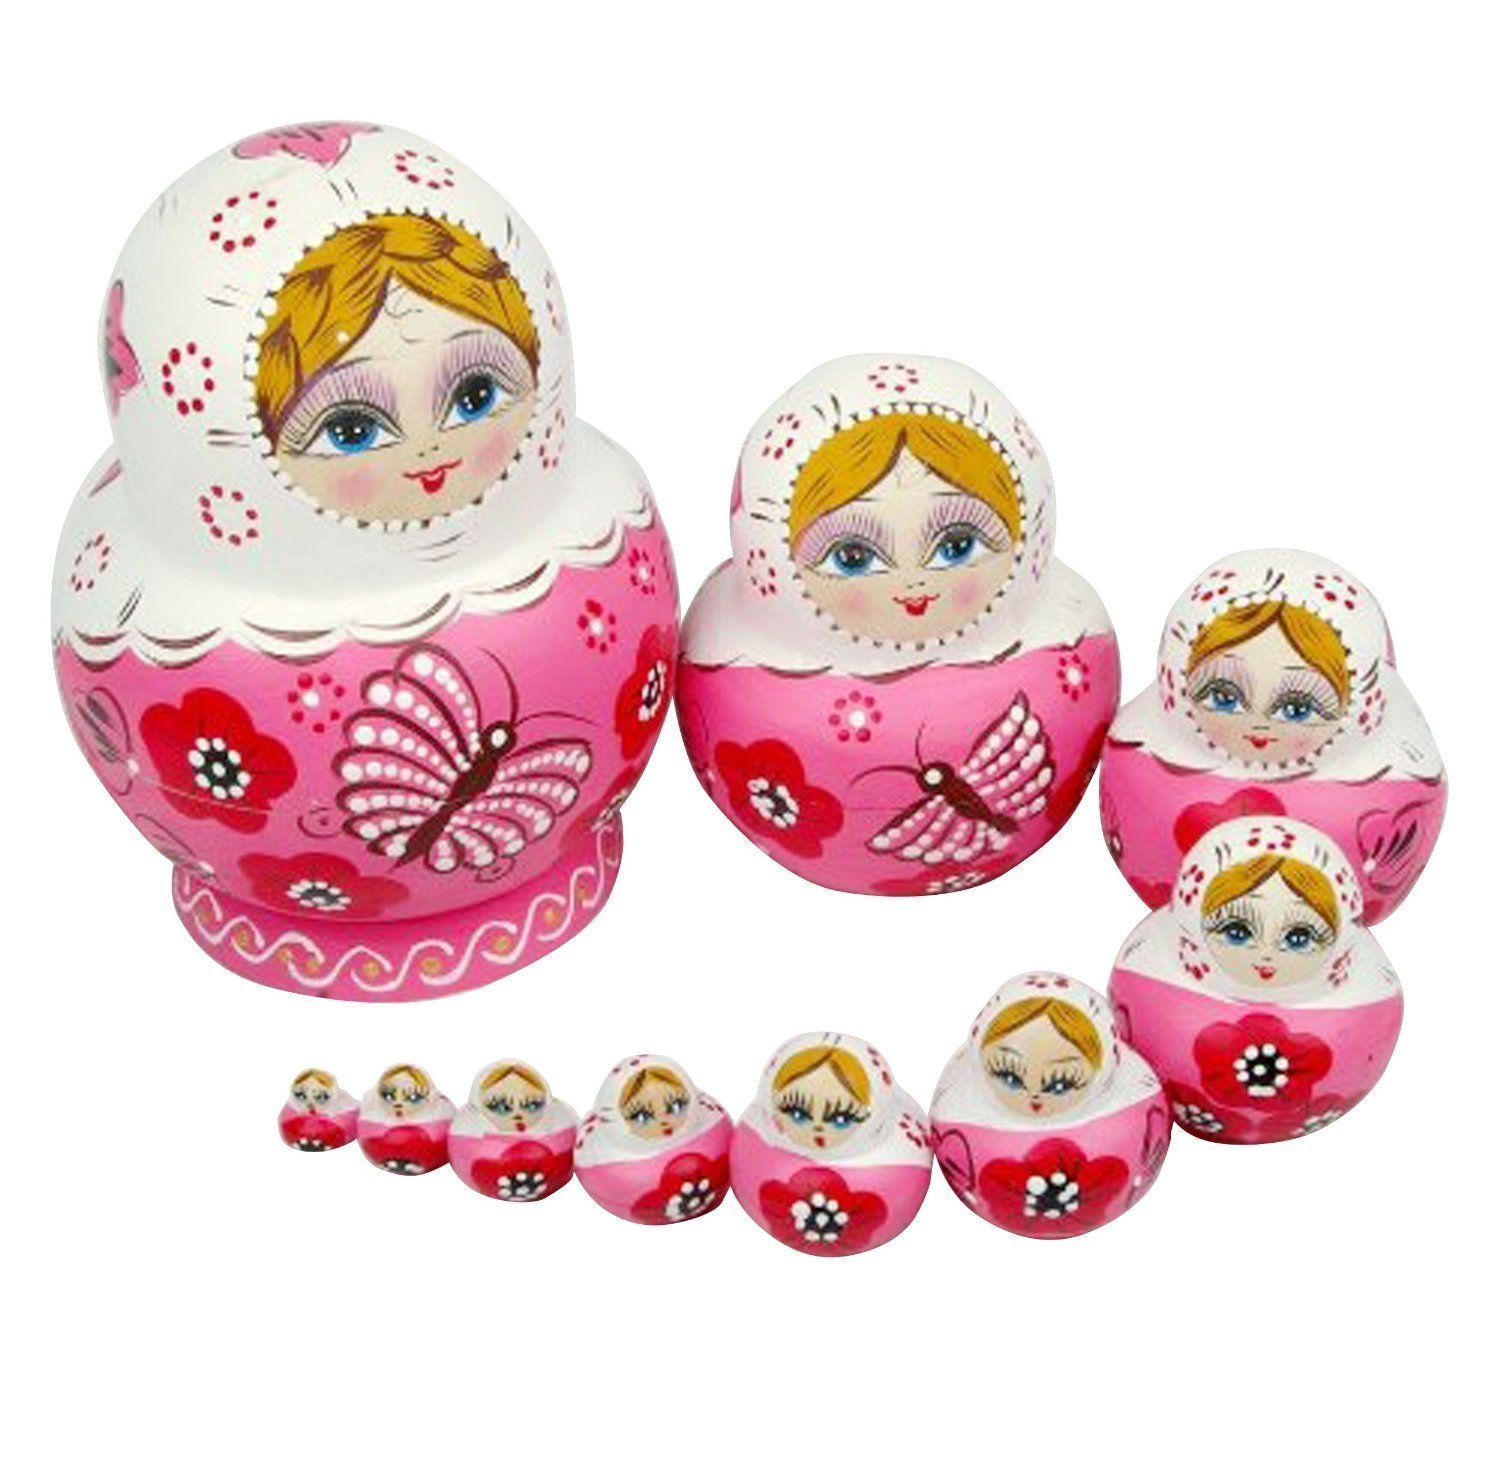 005 New 10pcs New Beautiful Pink Wooden Russian Nesting Dolls Gift Matreshka Handmade Yapthes